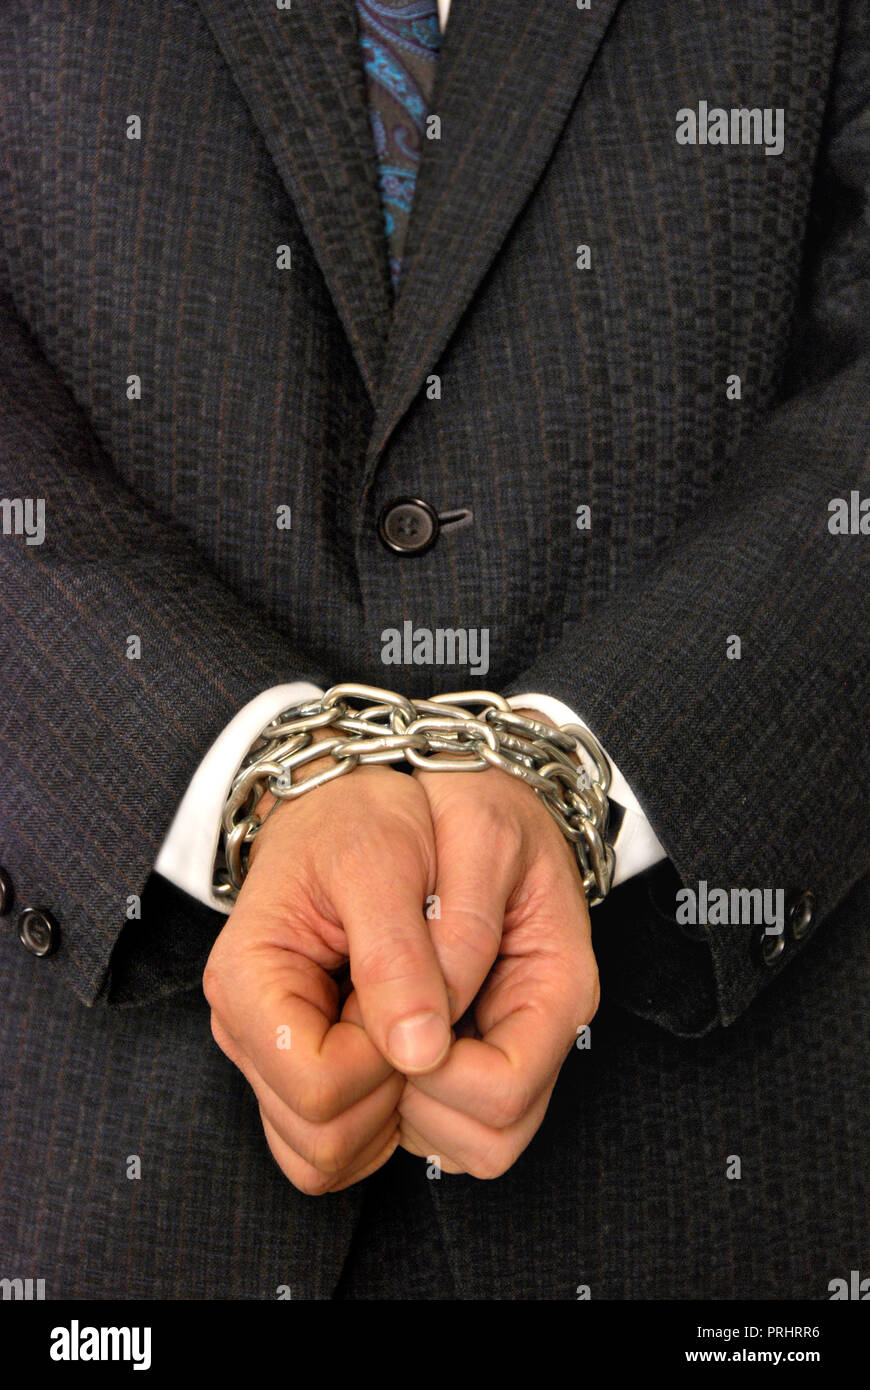 man in suit with hands tied with a chain - Stock Image